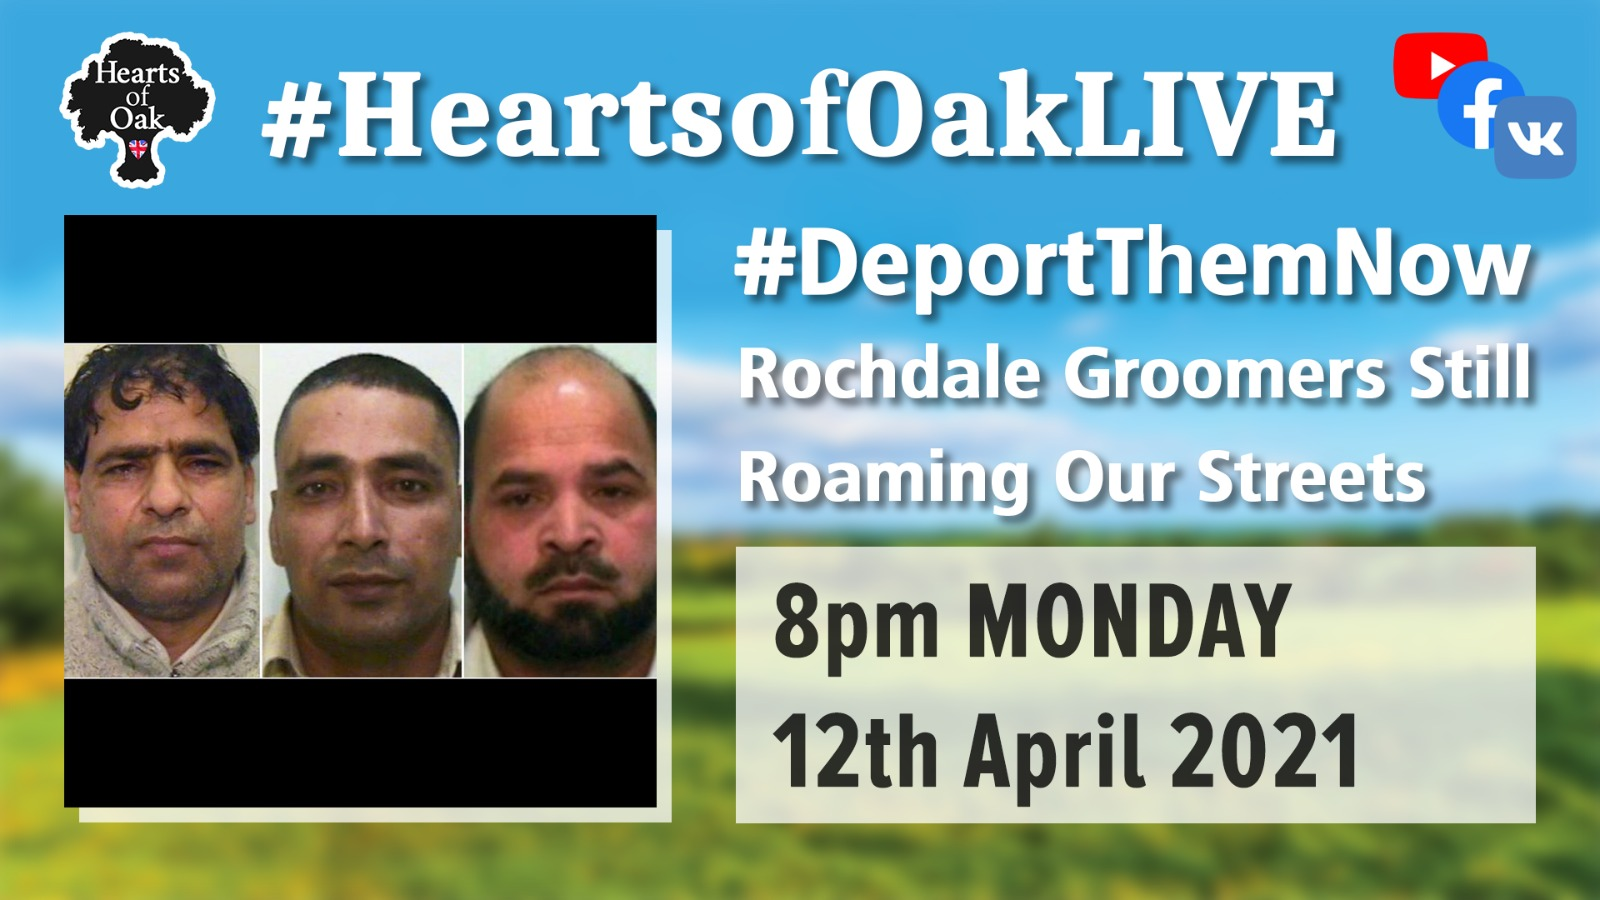 #DeportThemNow Rochdale Groomers still roaming our streets